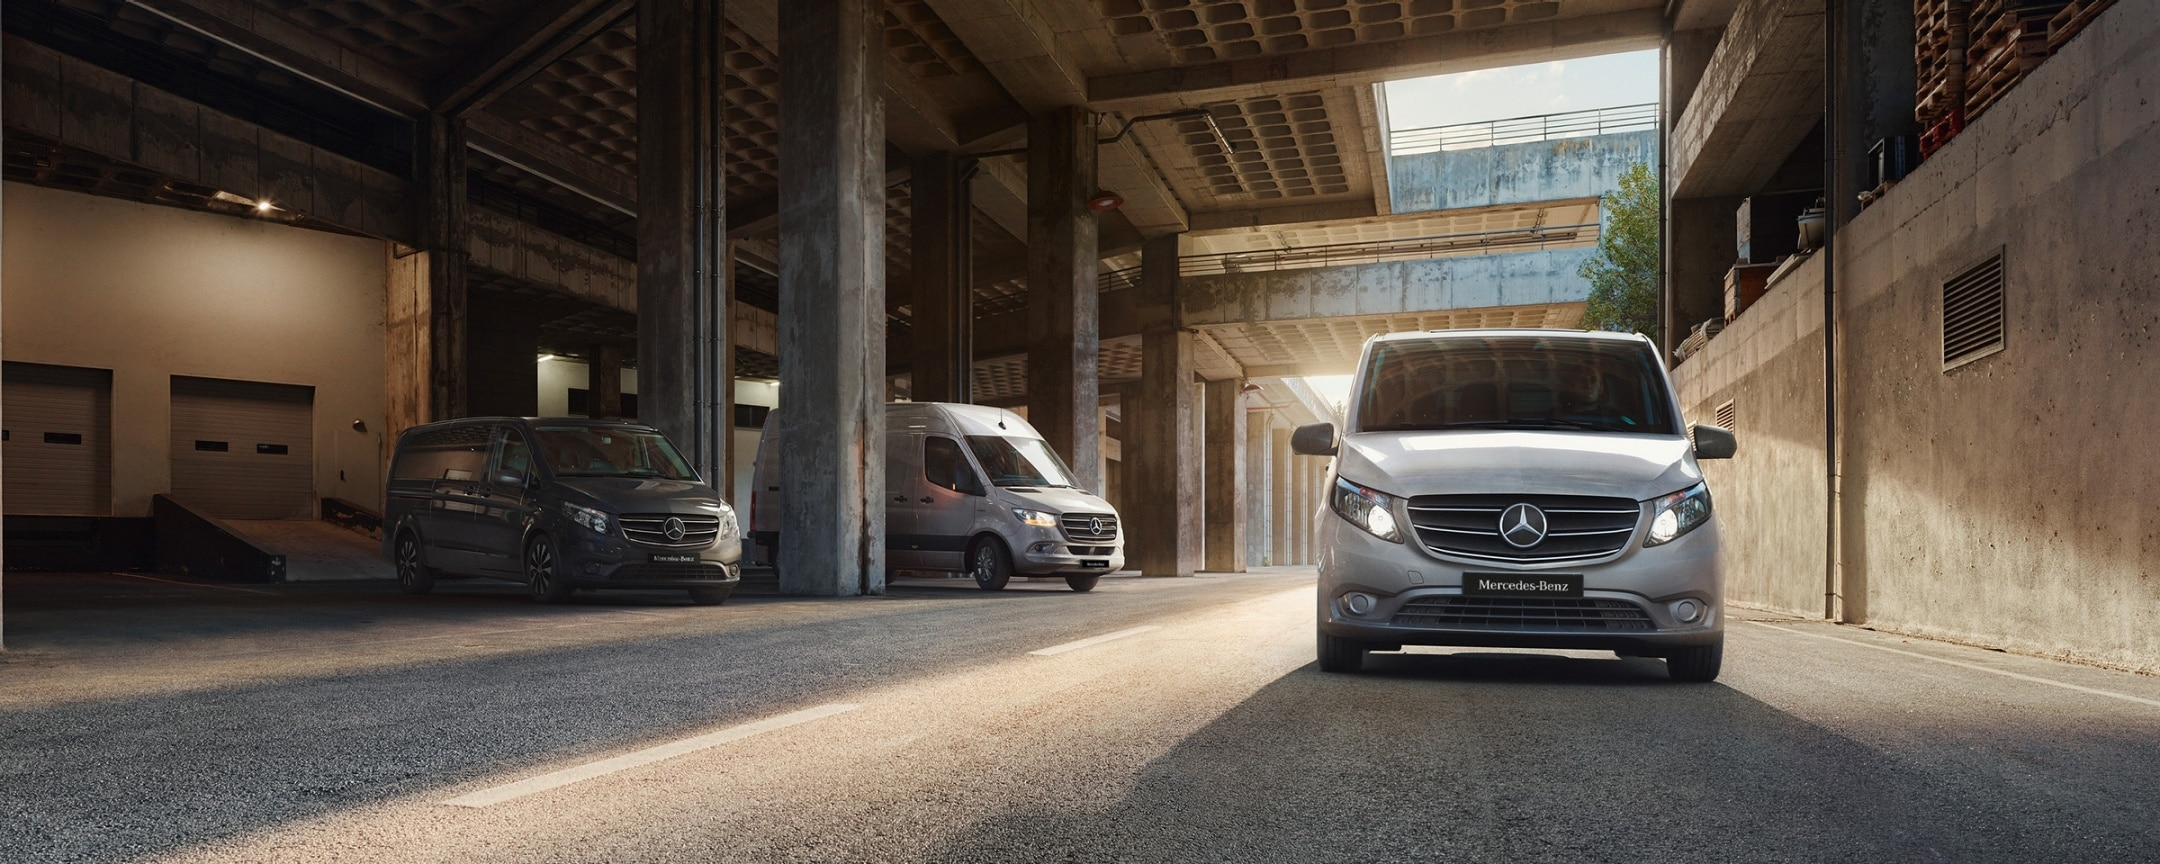 Mercedes-Benz Range with the Sprinter, Citan and Vito